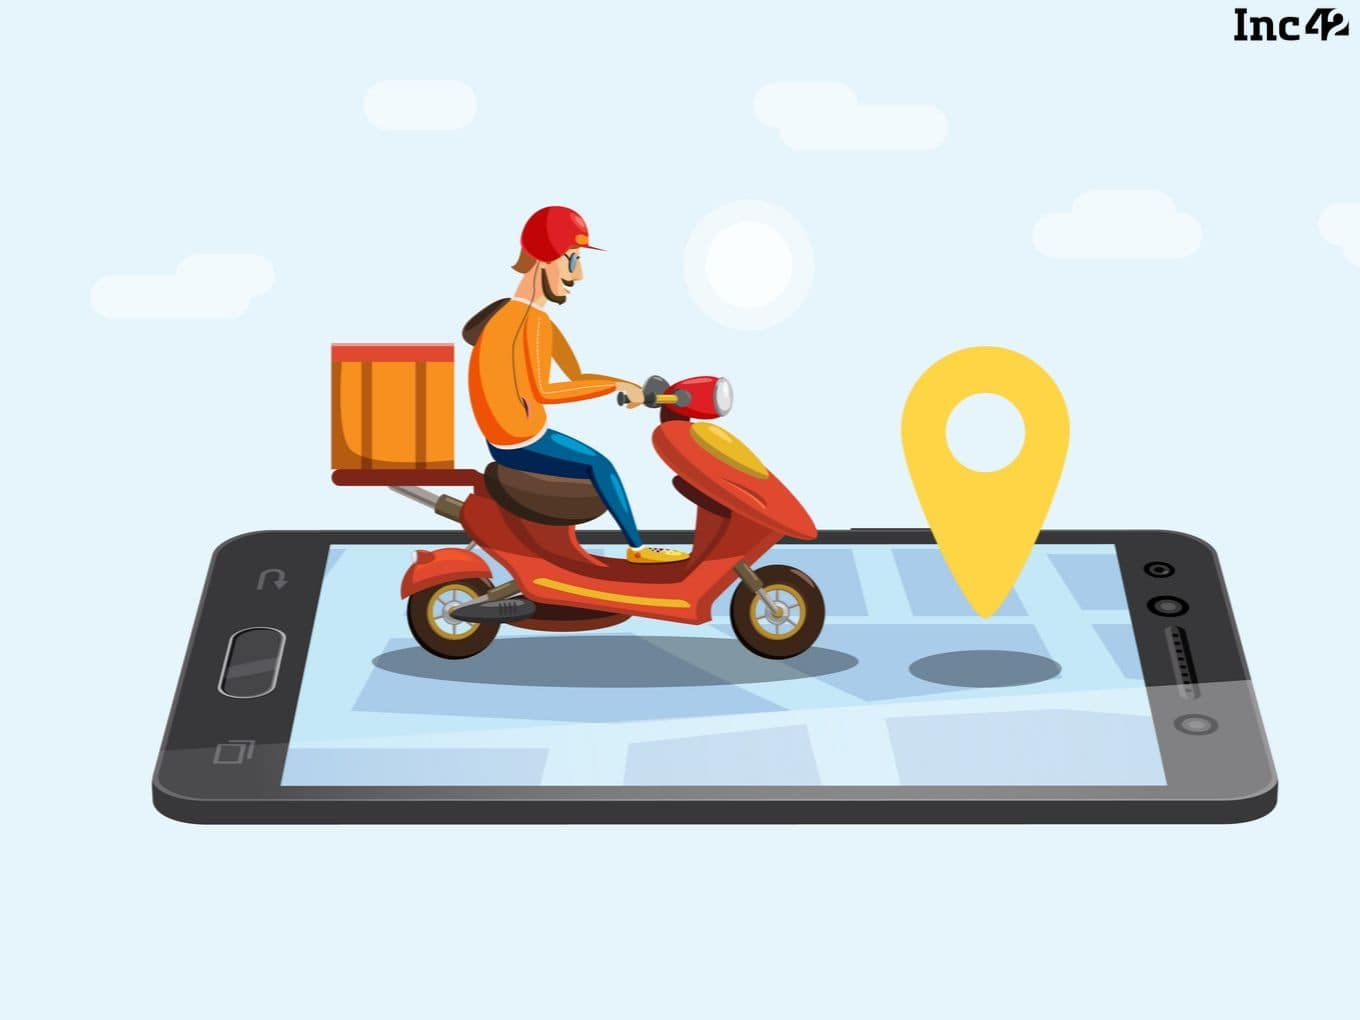 What Is A Hyperlocal Delivery Startup?